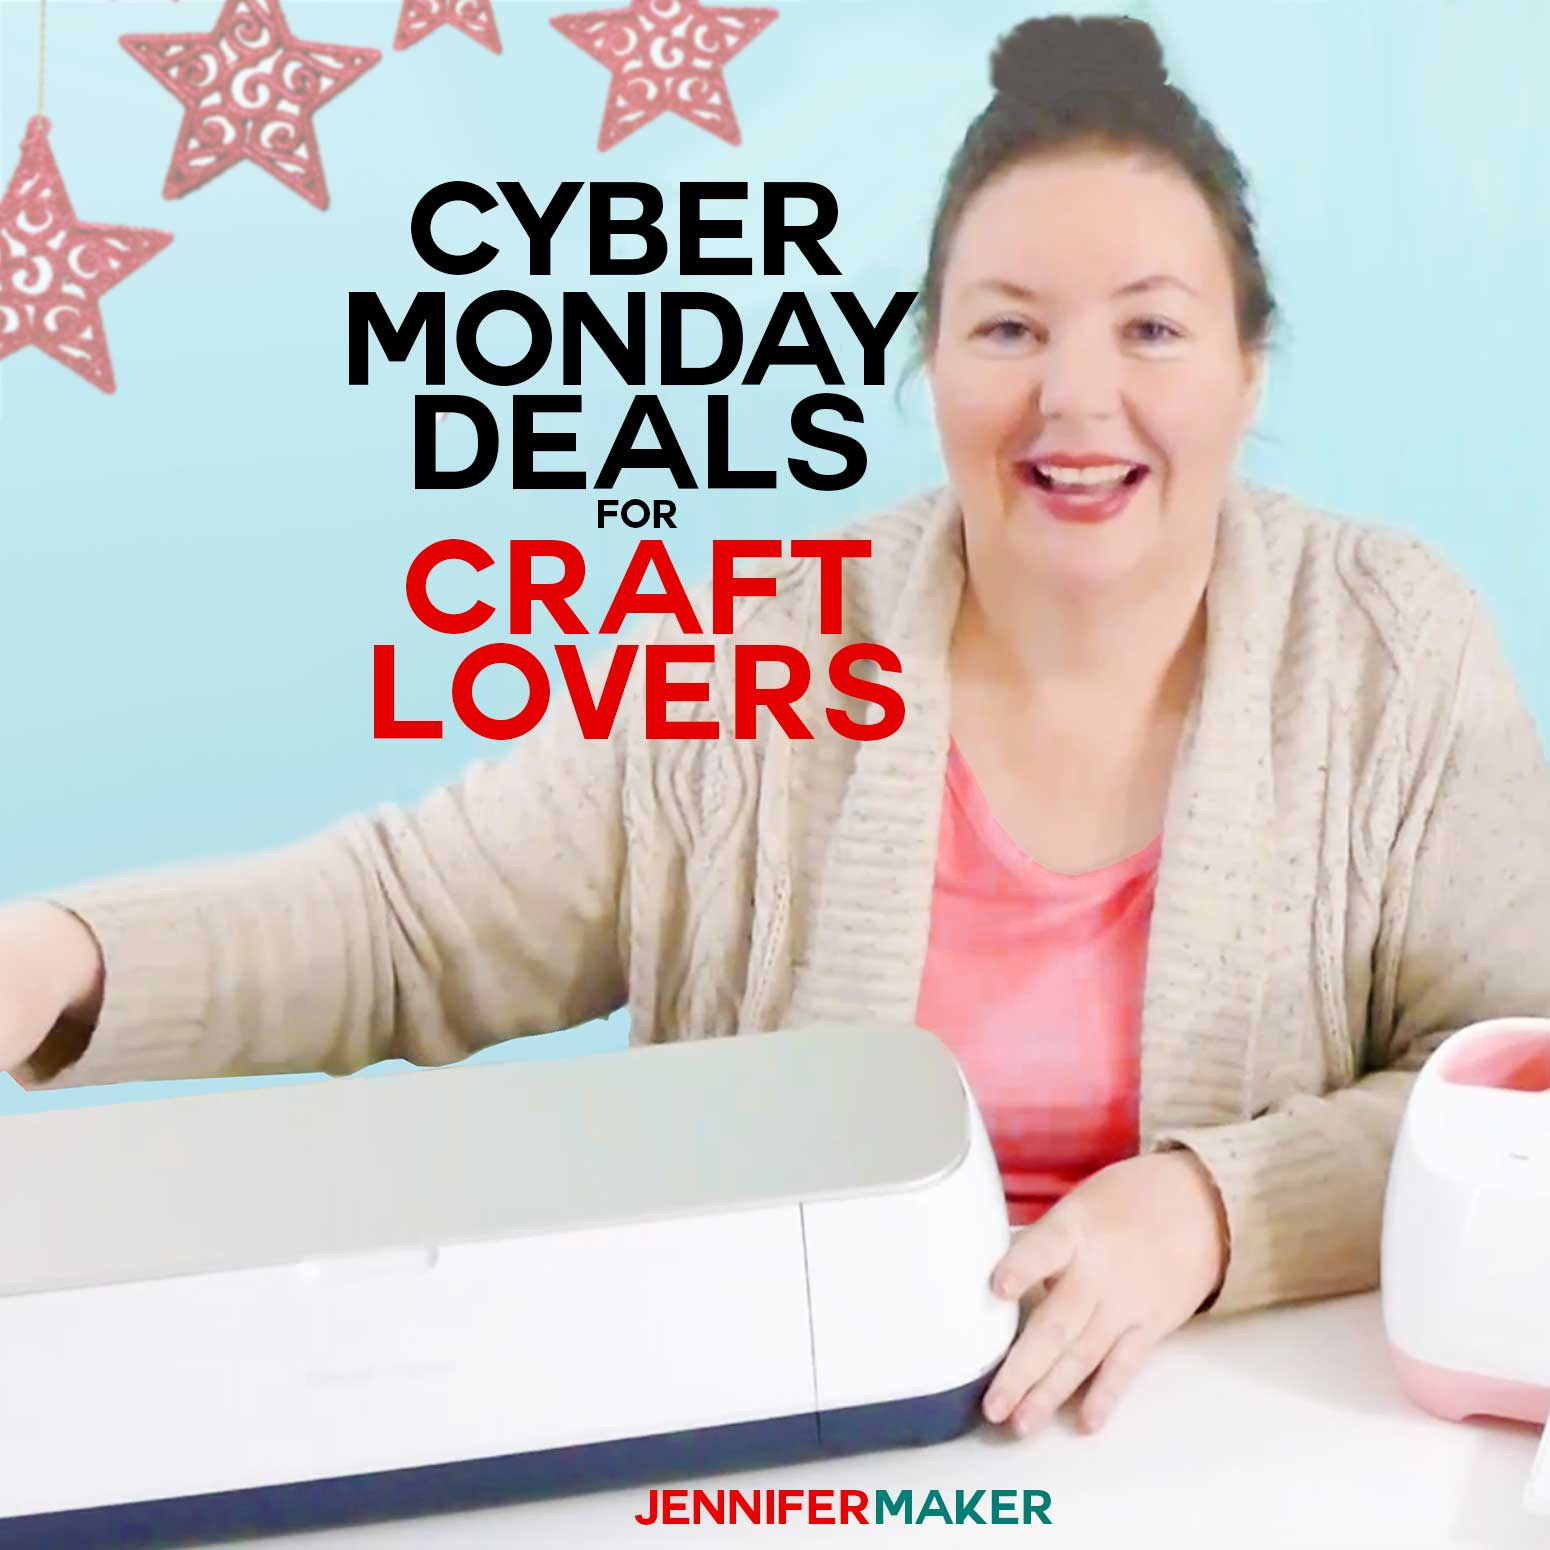 Cricut Maker Cyber Monday 2018 Deals and Bargains at Amazon